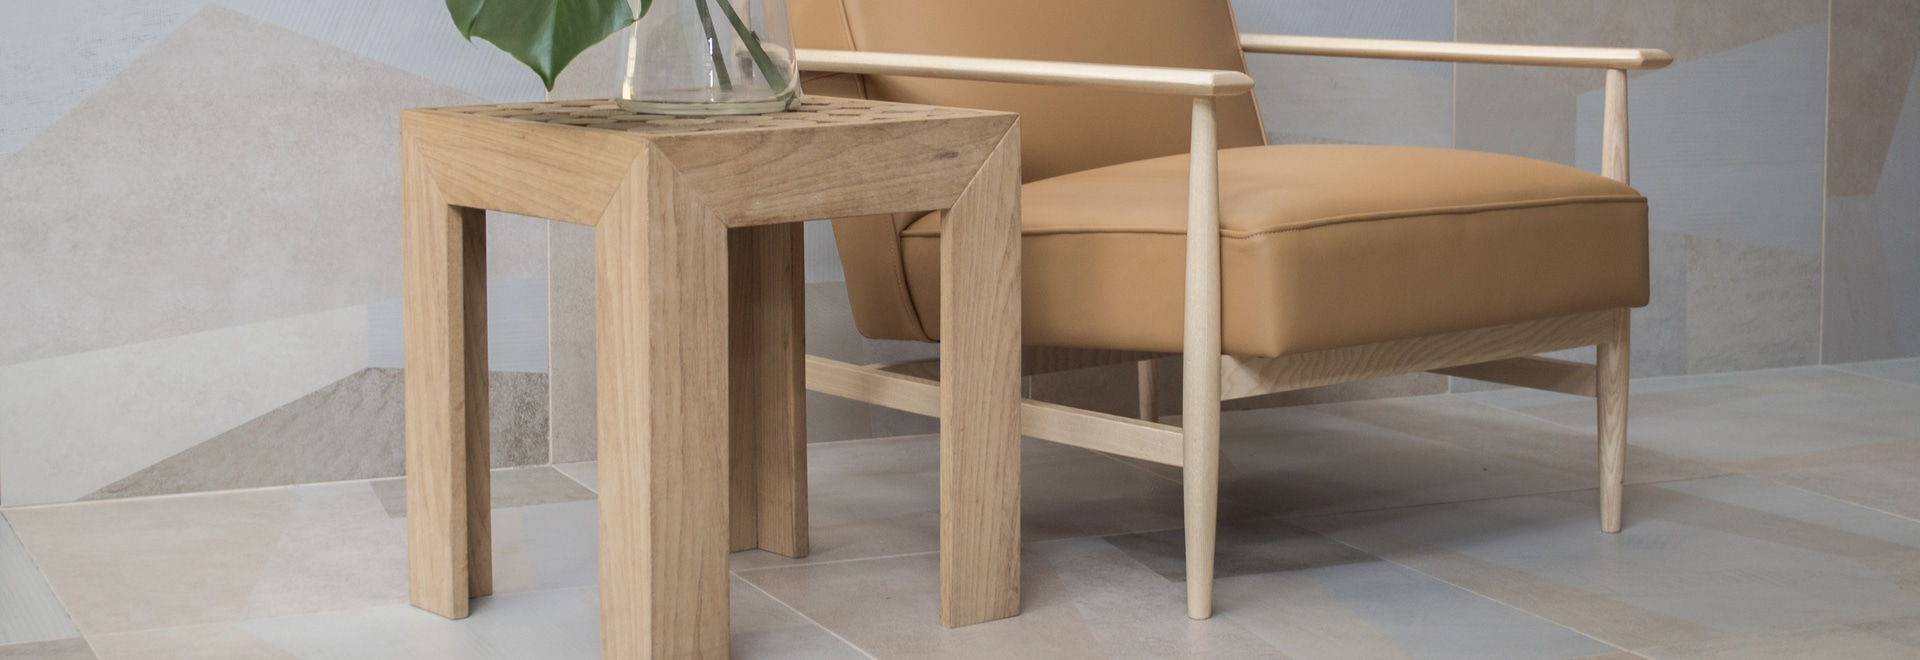 gaia armchair version with ash structure and camel leather